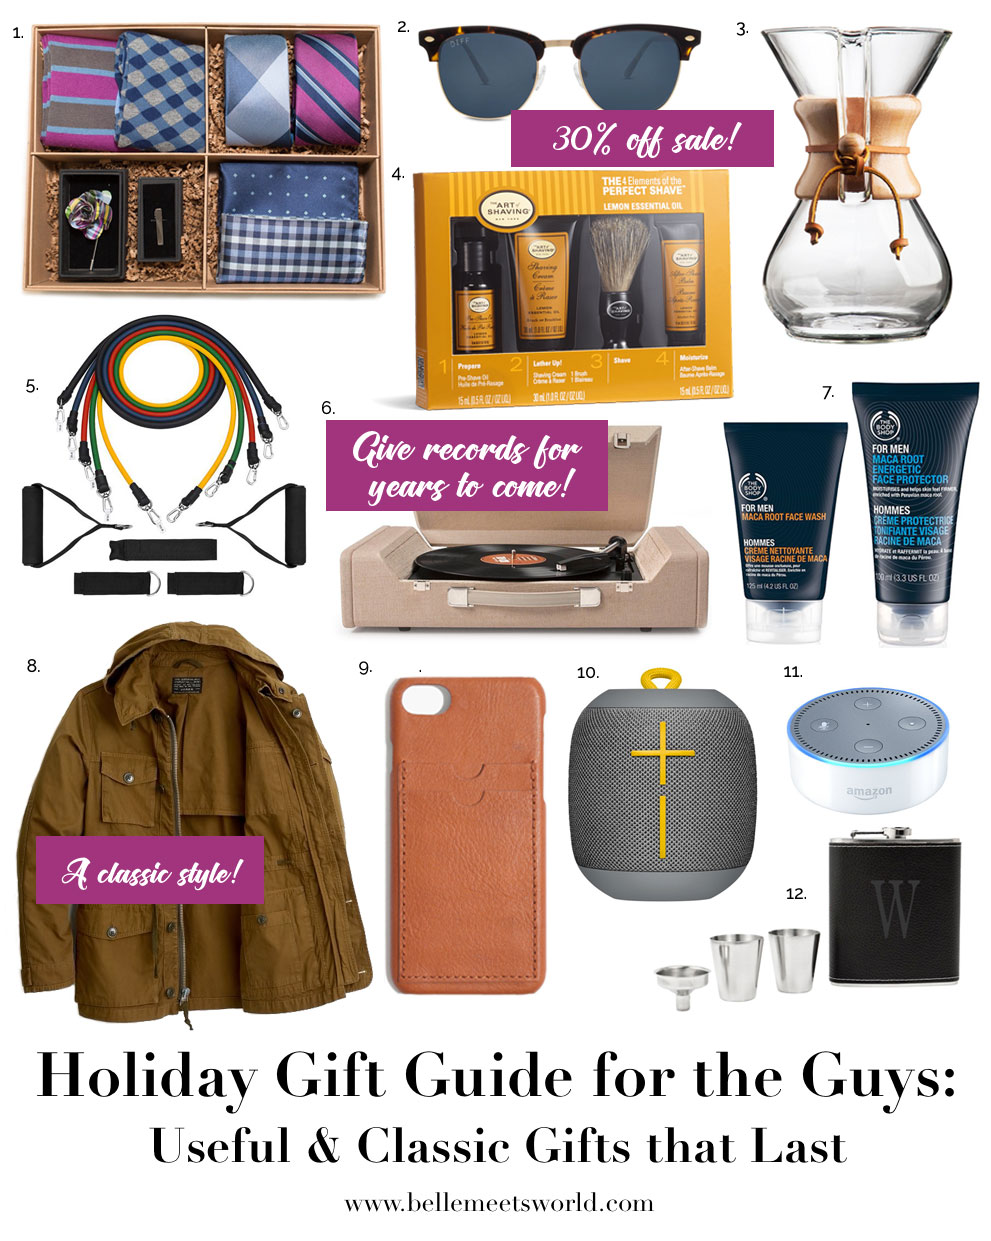 HOLIDAY GIFT GUIDE FOR THE GUYS: USEFUL & CLASSIC GIFTS THAT LAST